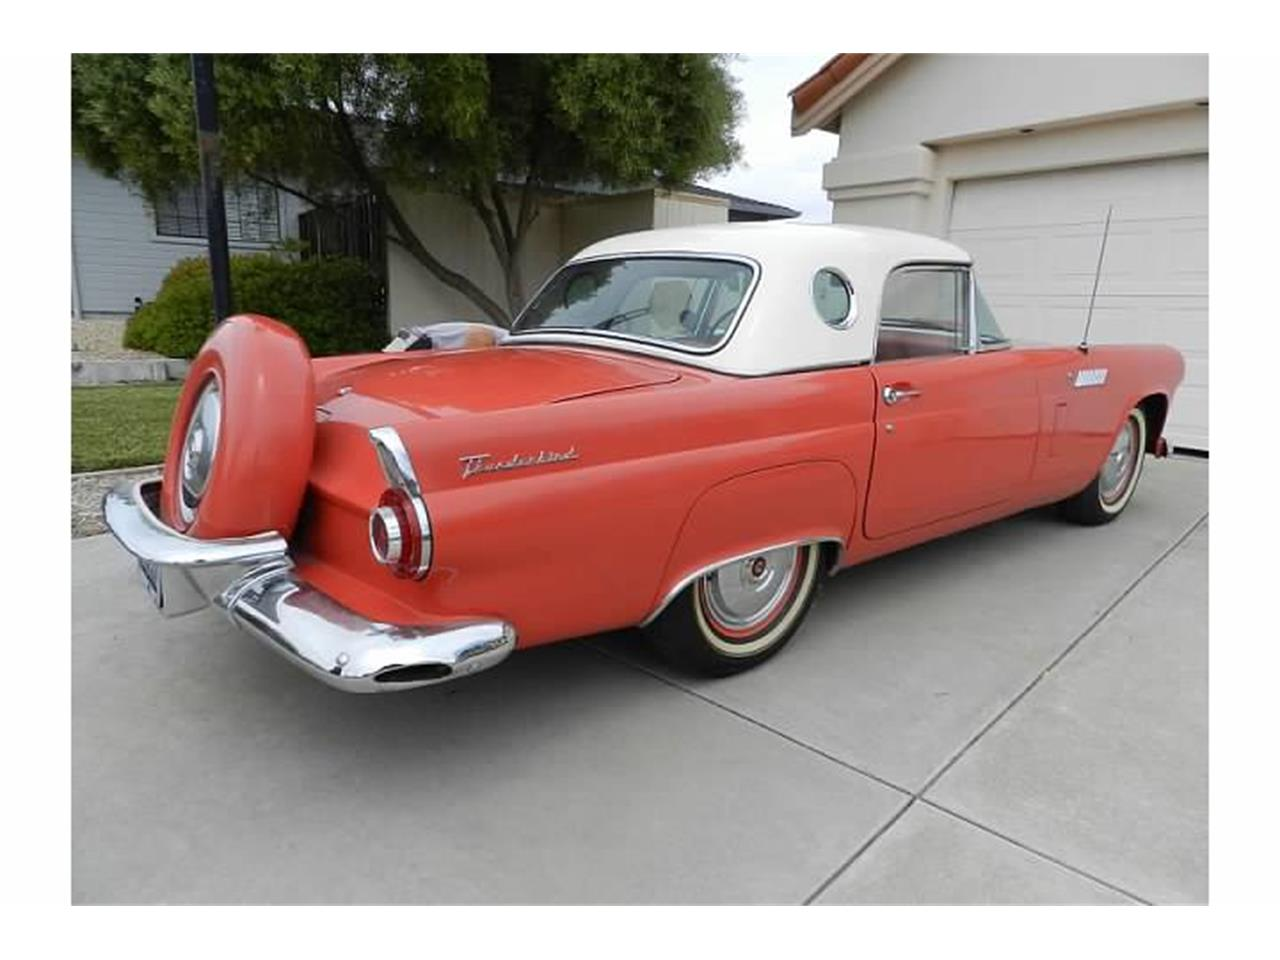 Large Picture of Classic '56 Thunderbird located in Hollister California Offered by a Private Seller - C1JY